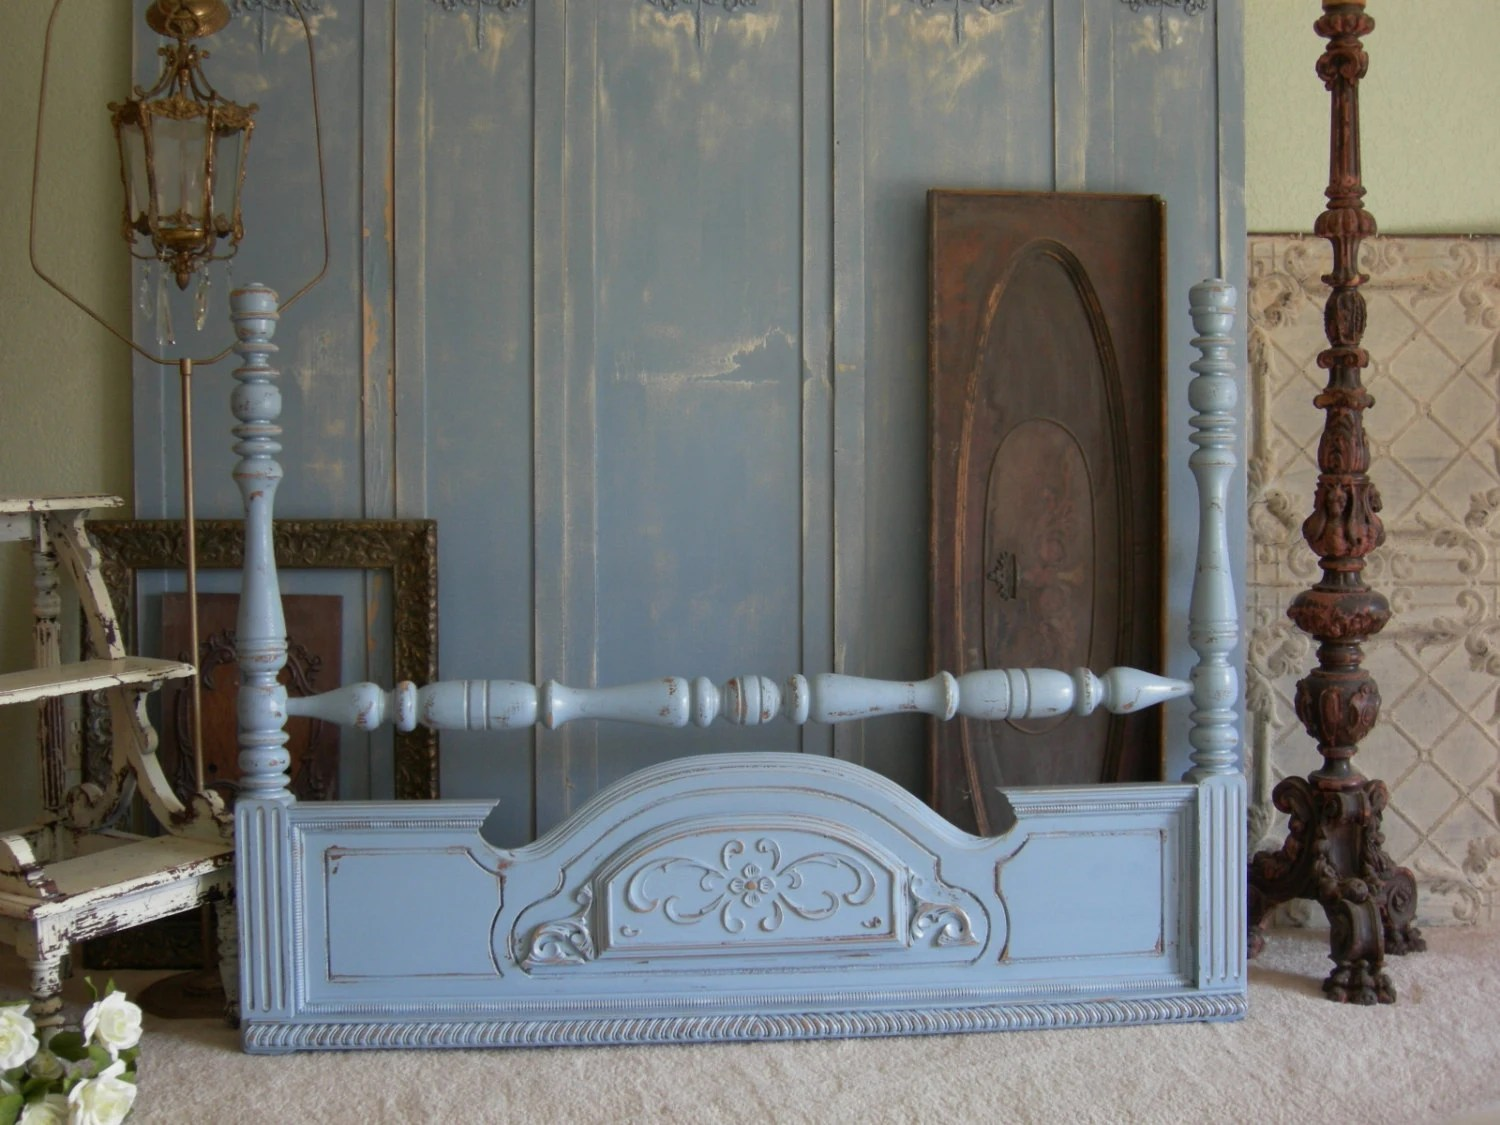 Painted HEADBOARD Queen Or Full Size Bed Shabby Chic Headboard